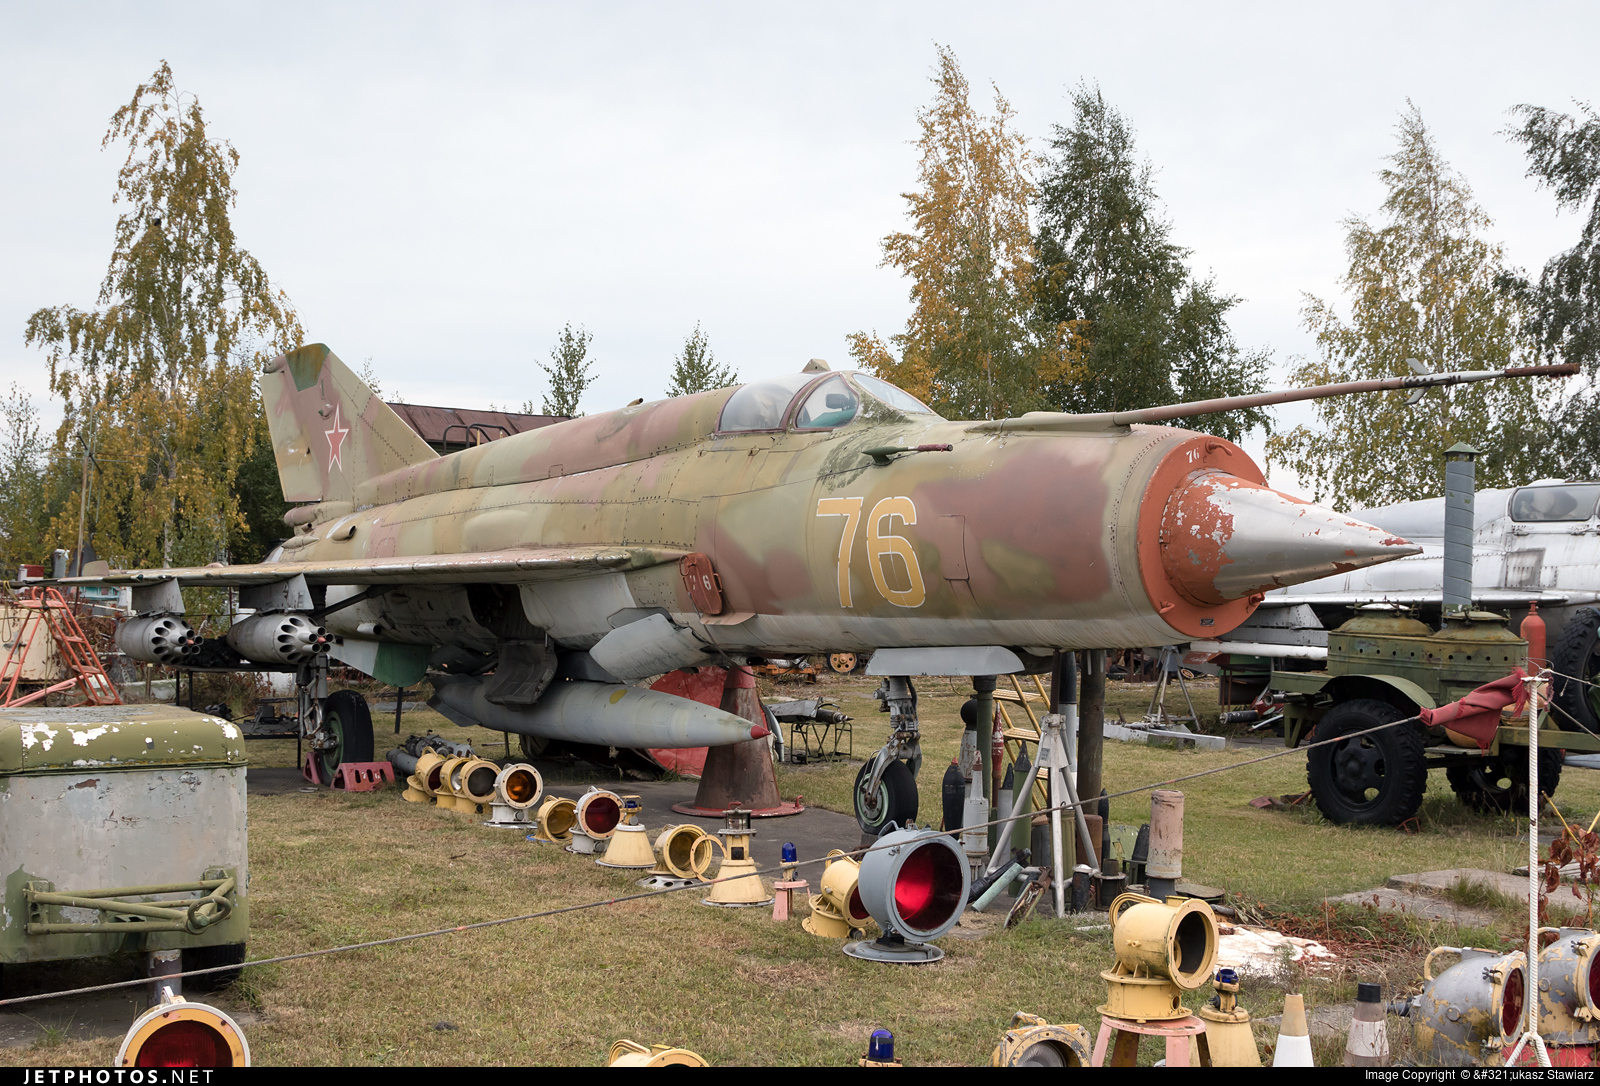 76 - Mikoyan-Gurevich MiG-21 Fishbed - Russia - Air Force